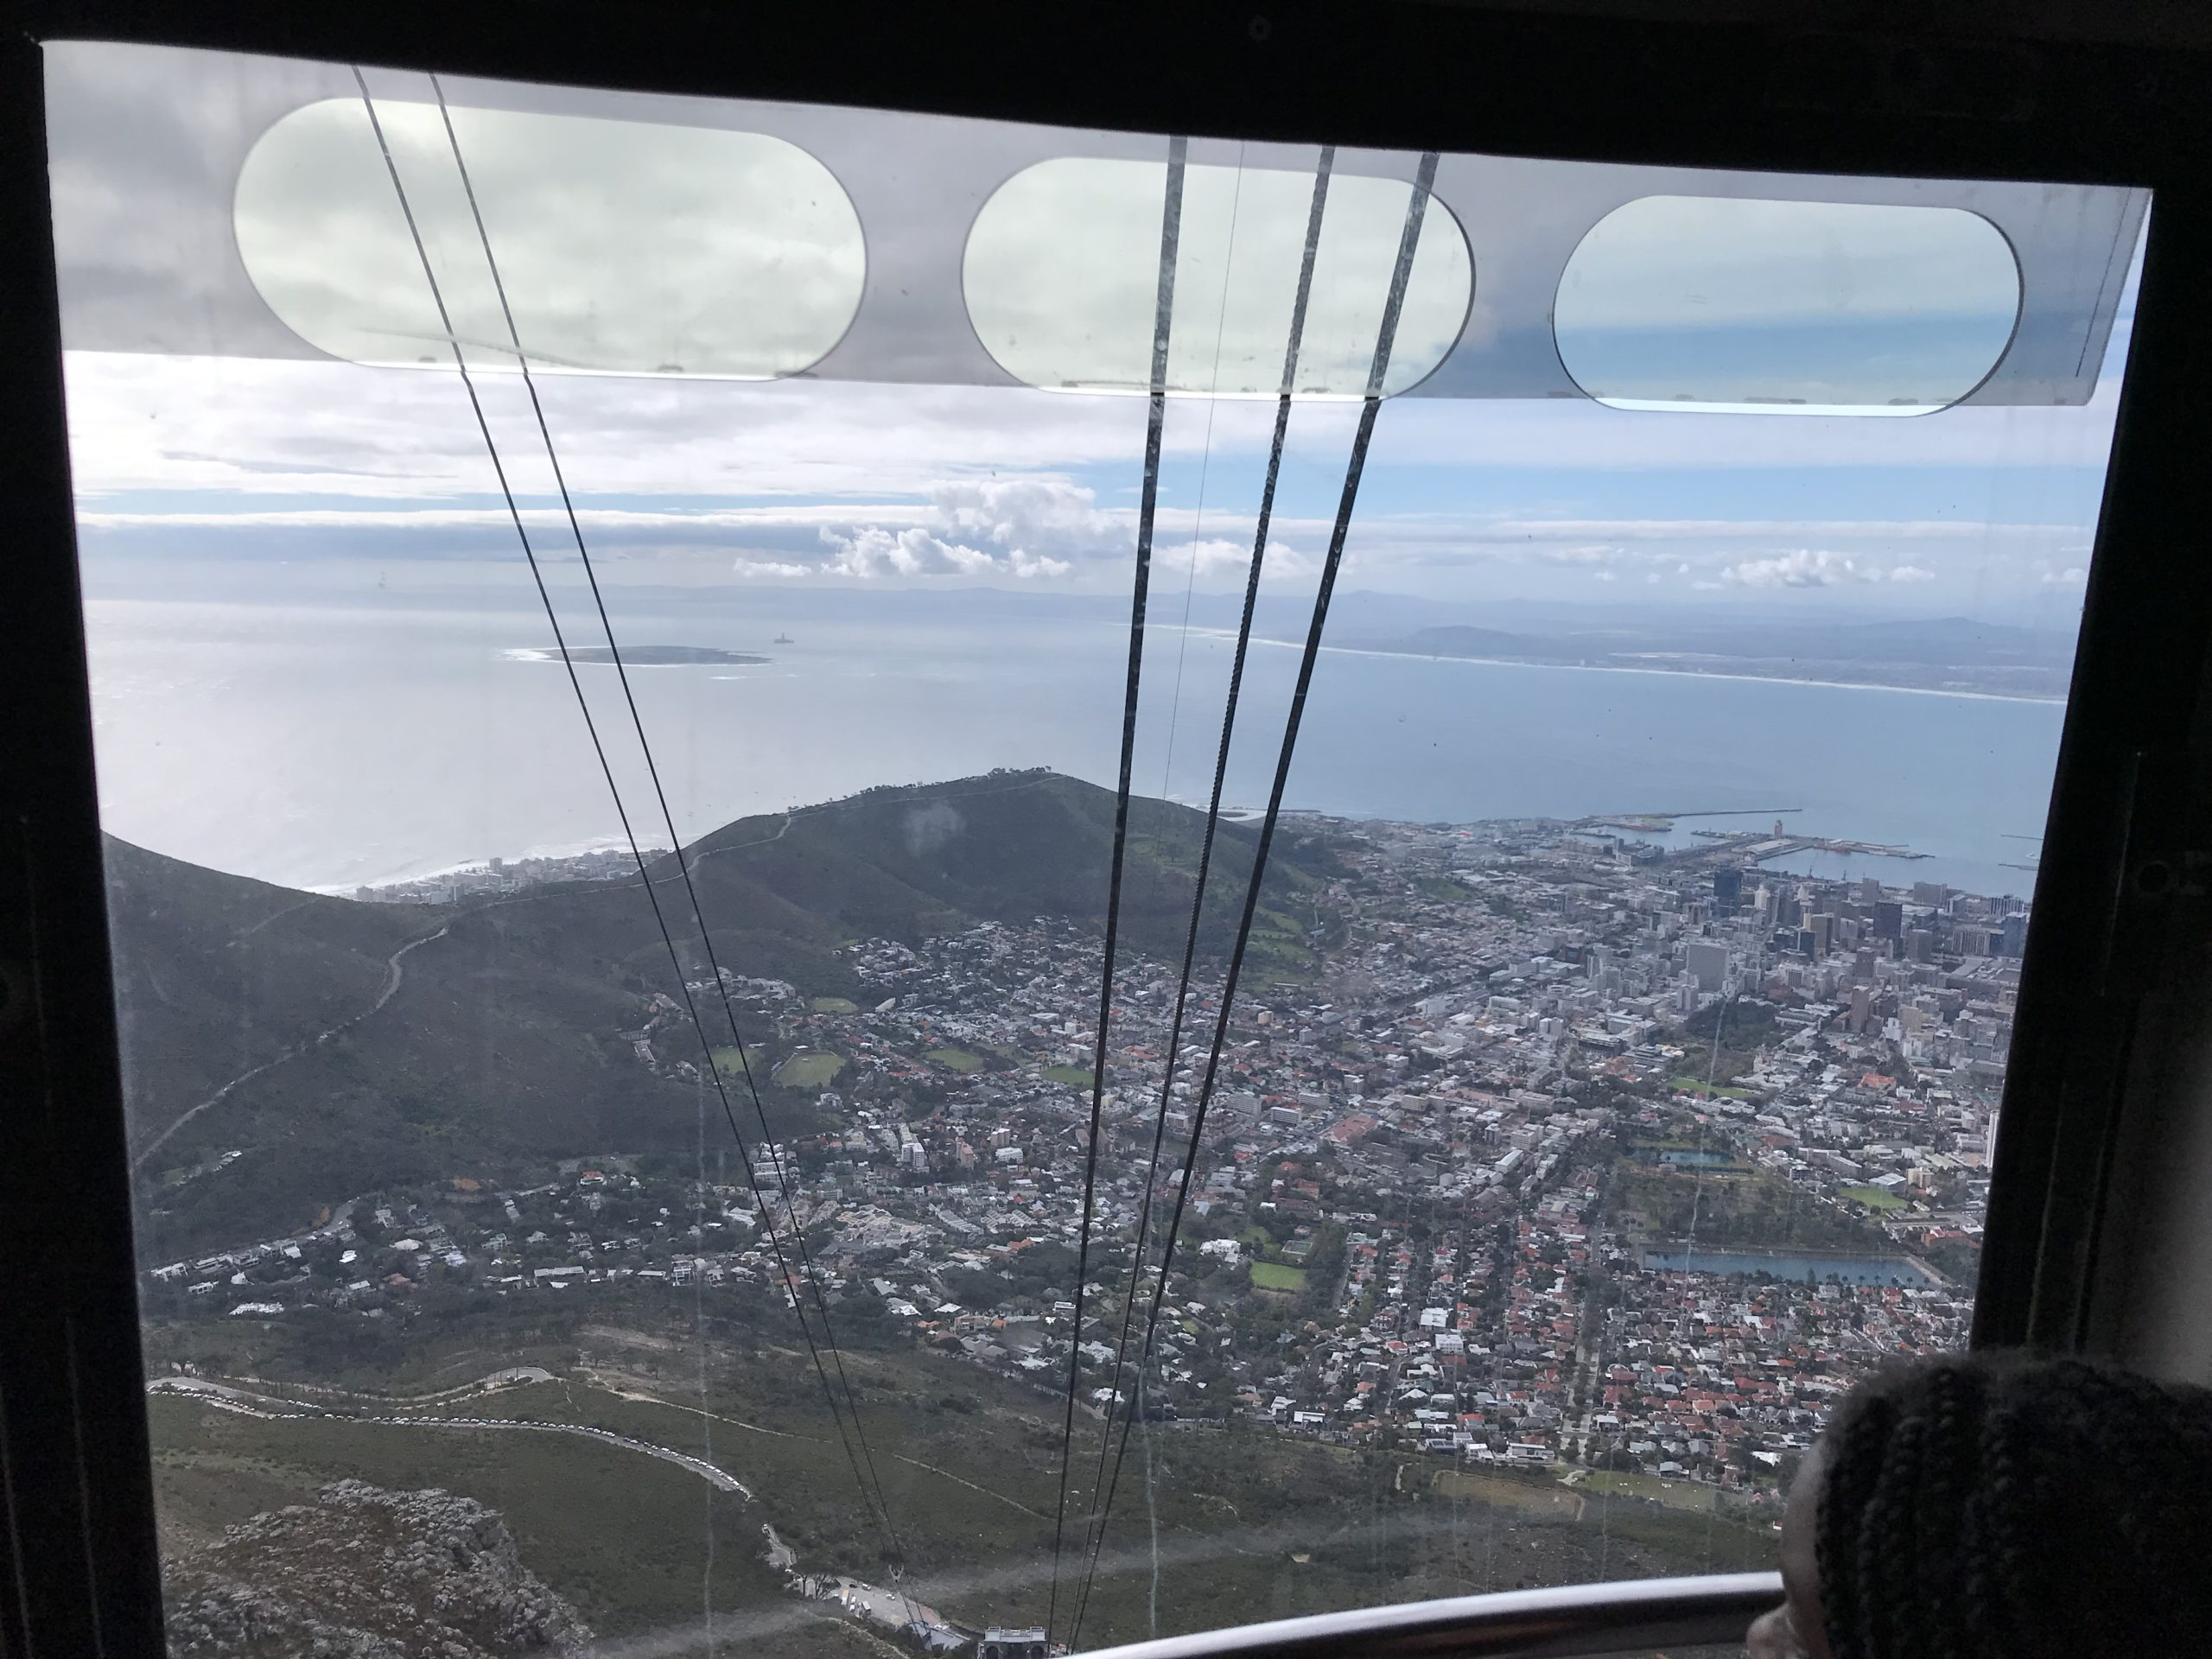 Going down on the cable car